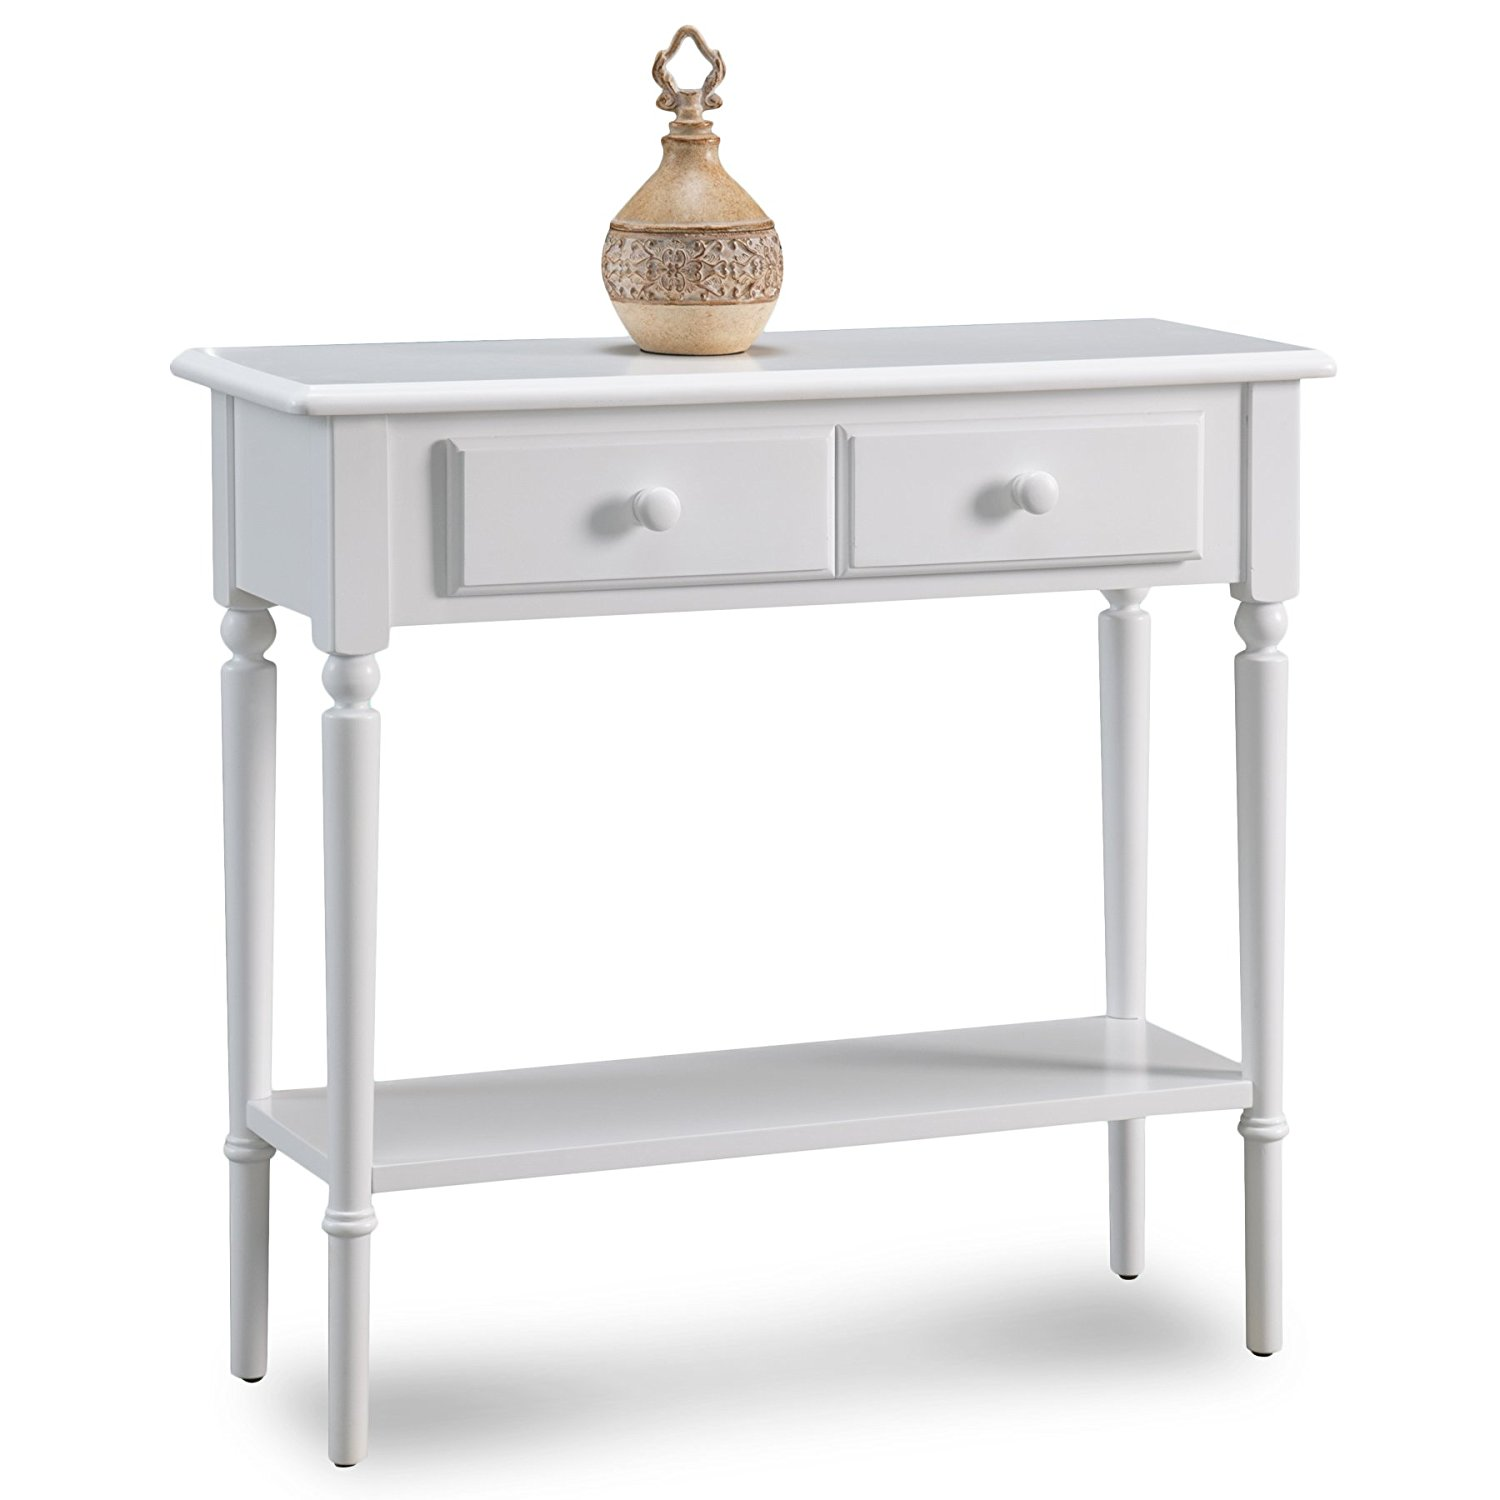 Narrow Console Table With Drawers Advice Cool Ideas For Home